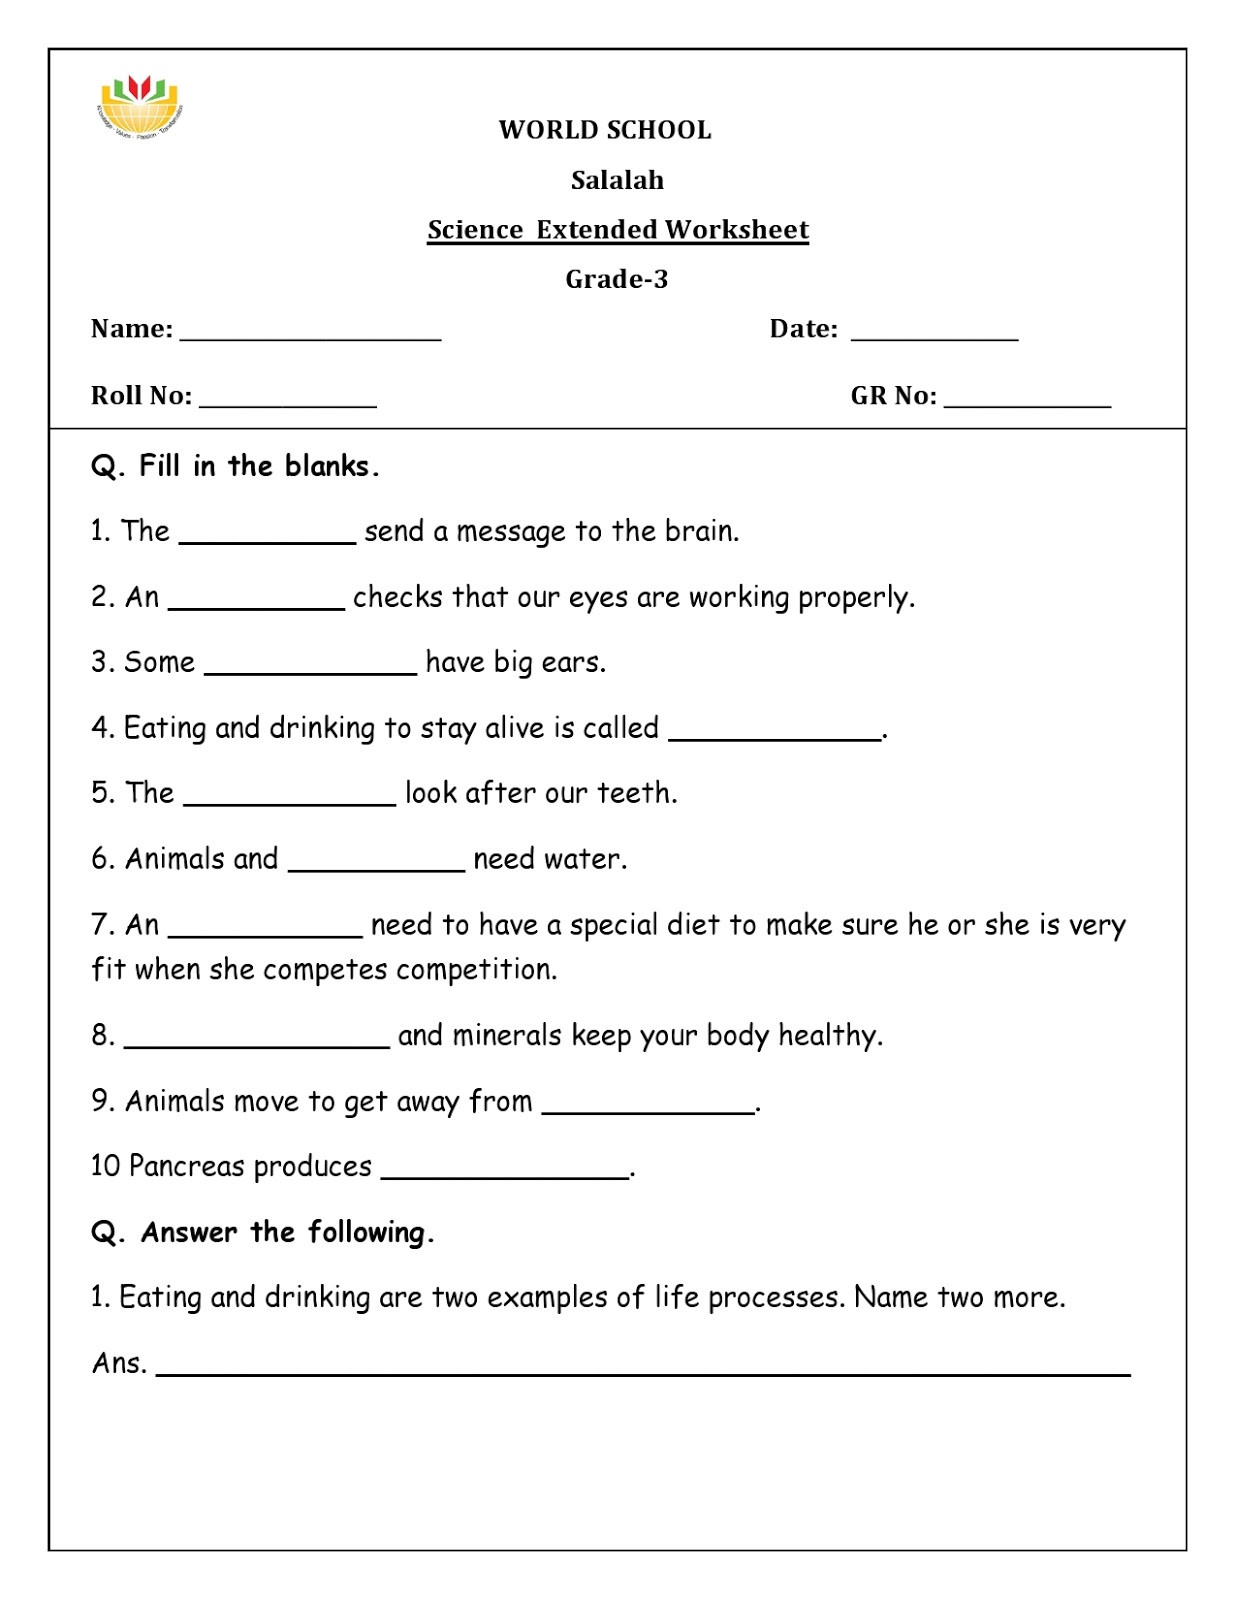 Seventh Grade Science Worksheets Math Basketball Math Play Maximum Destruction Coloring Pages